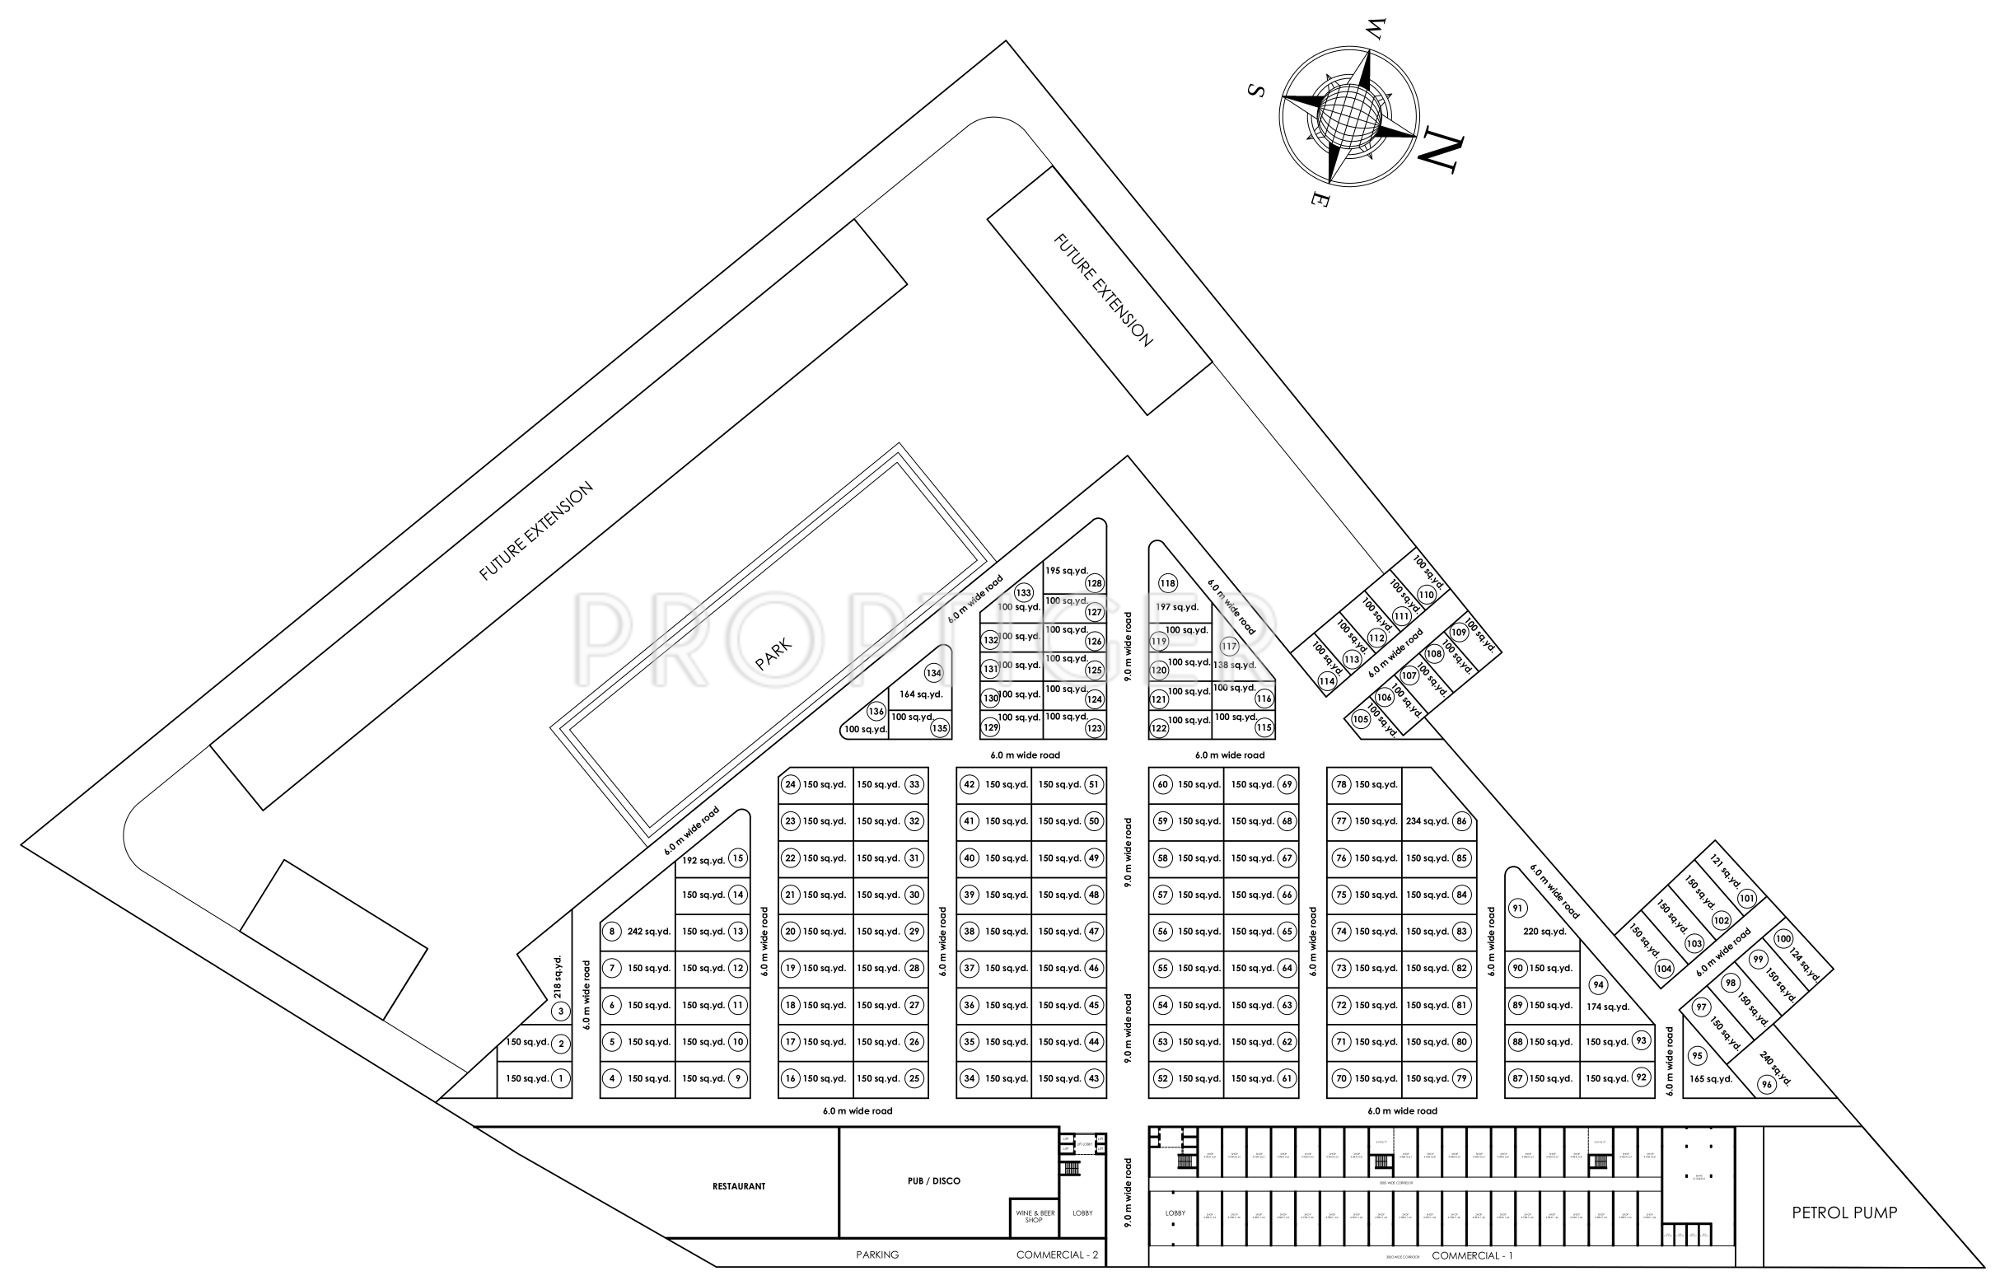 floor plan 1bhk 1t 450 sq ft free home design ideas images 450 sq foot apartment floor plan trend home design and decor